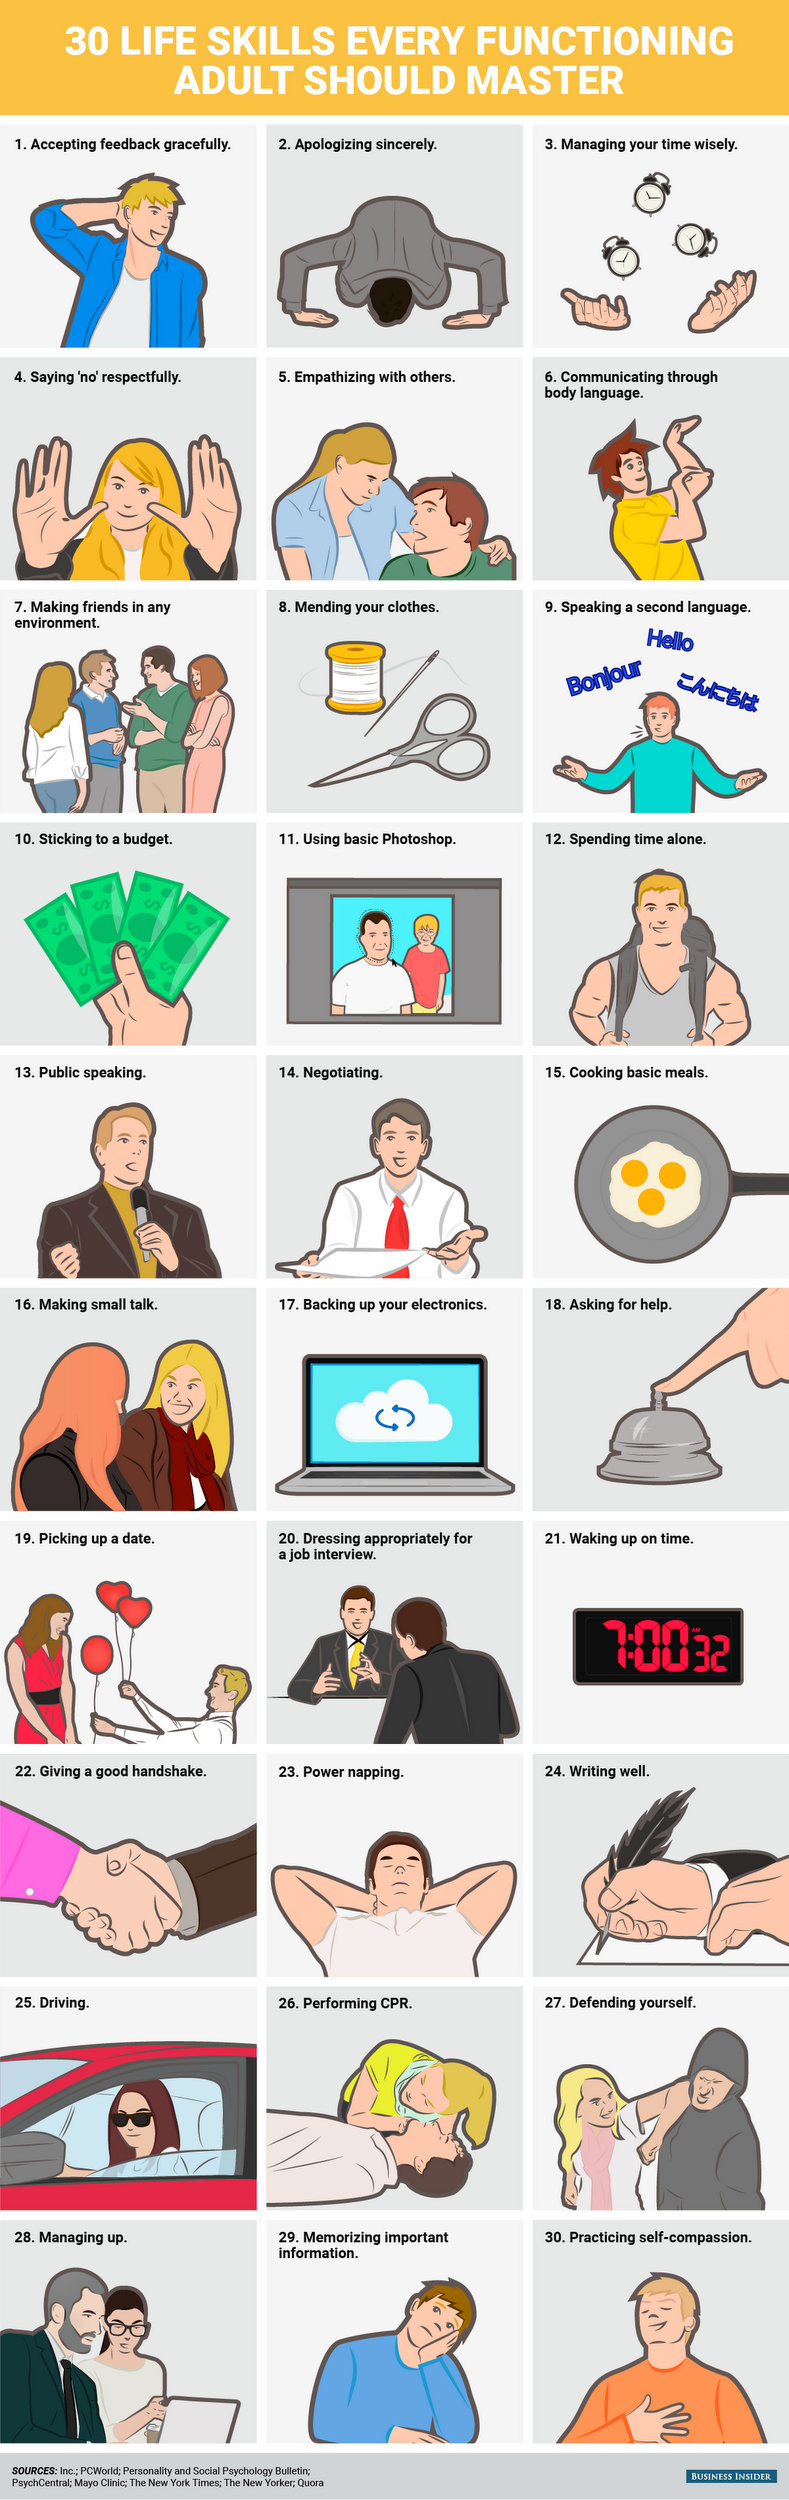 30 Life Skills Every Professionals Should Master